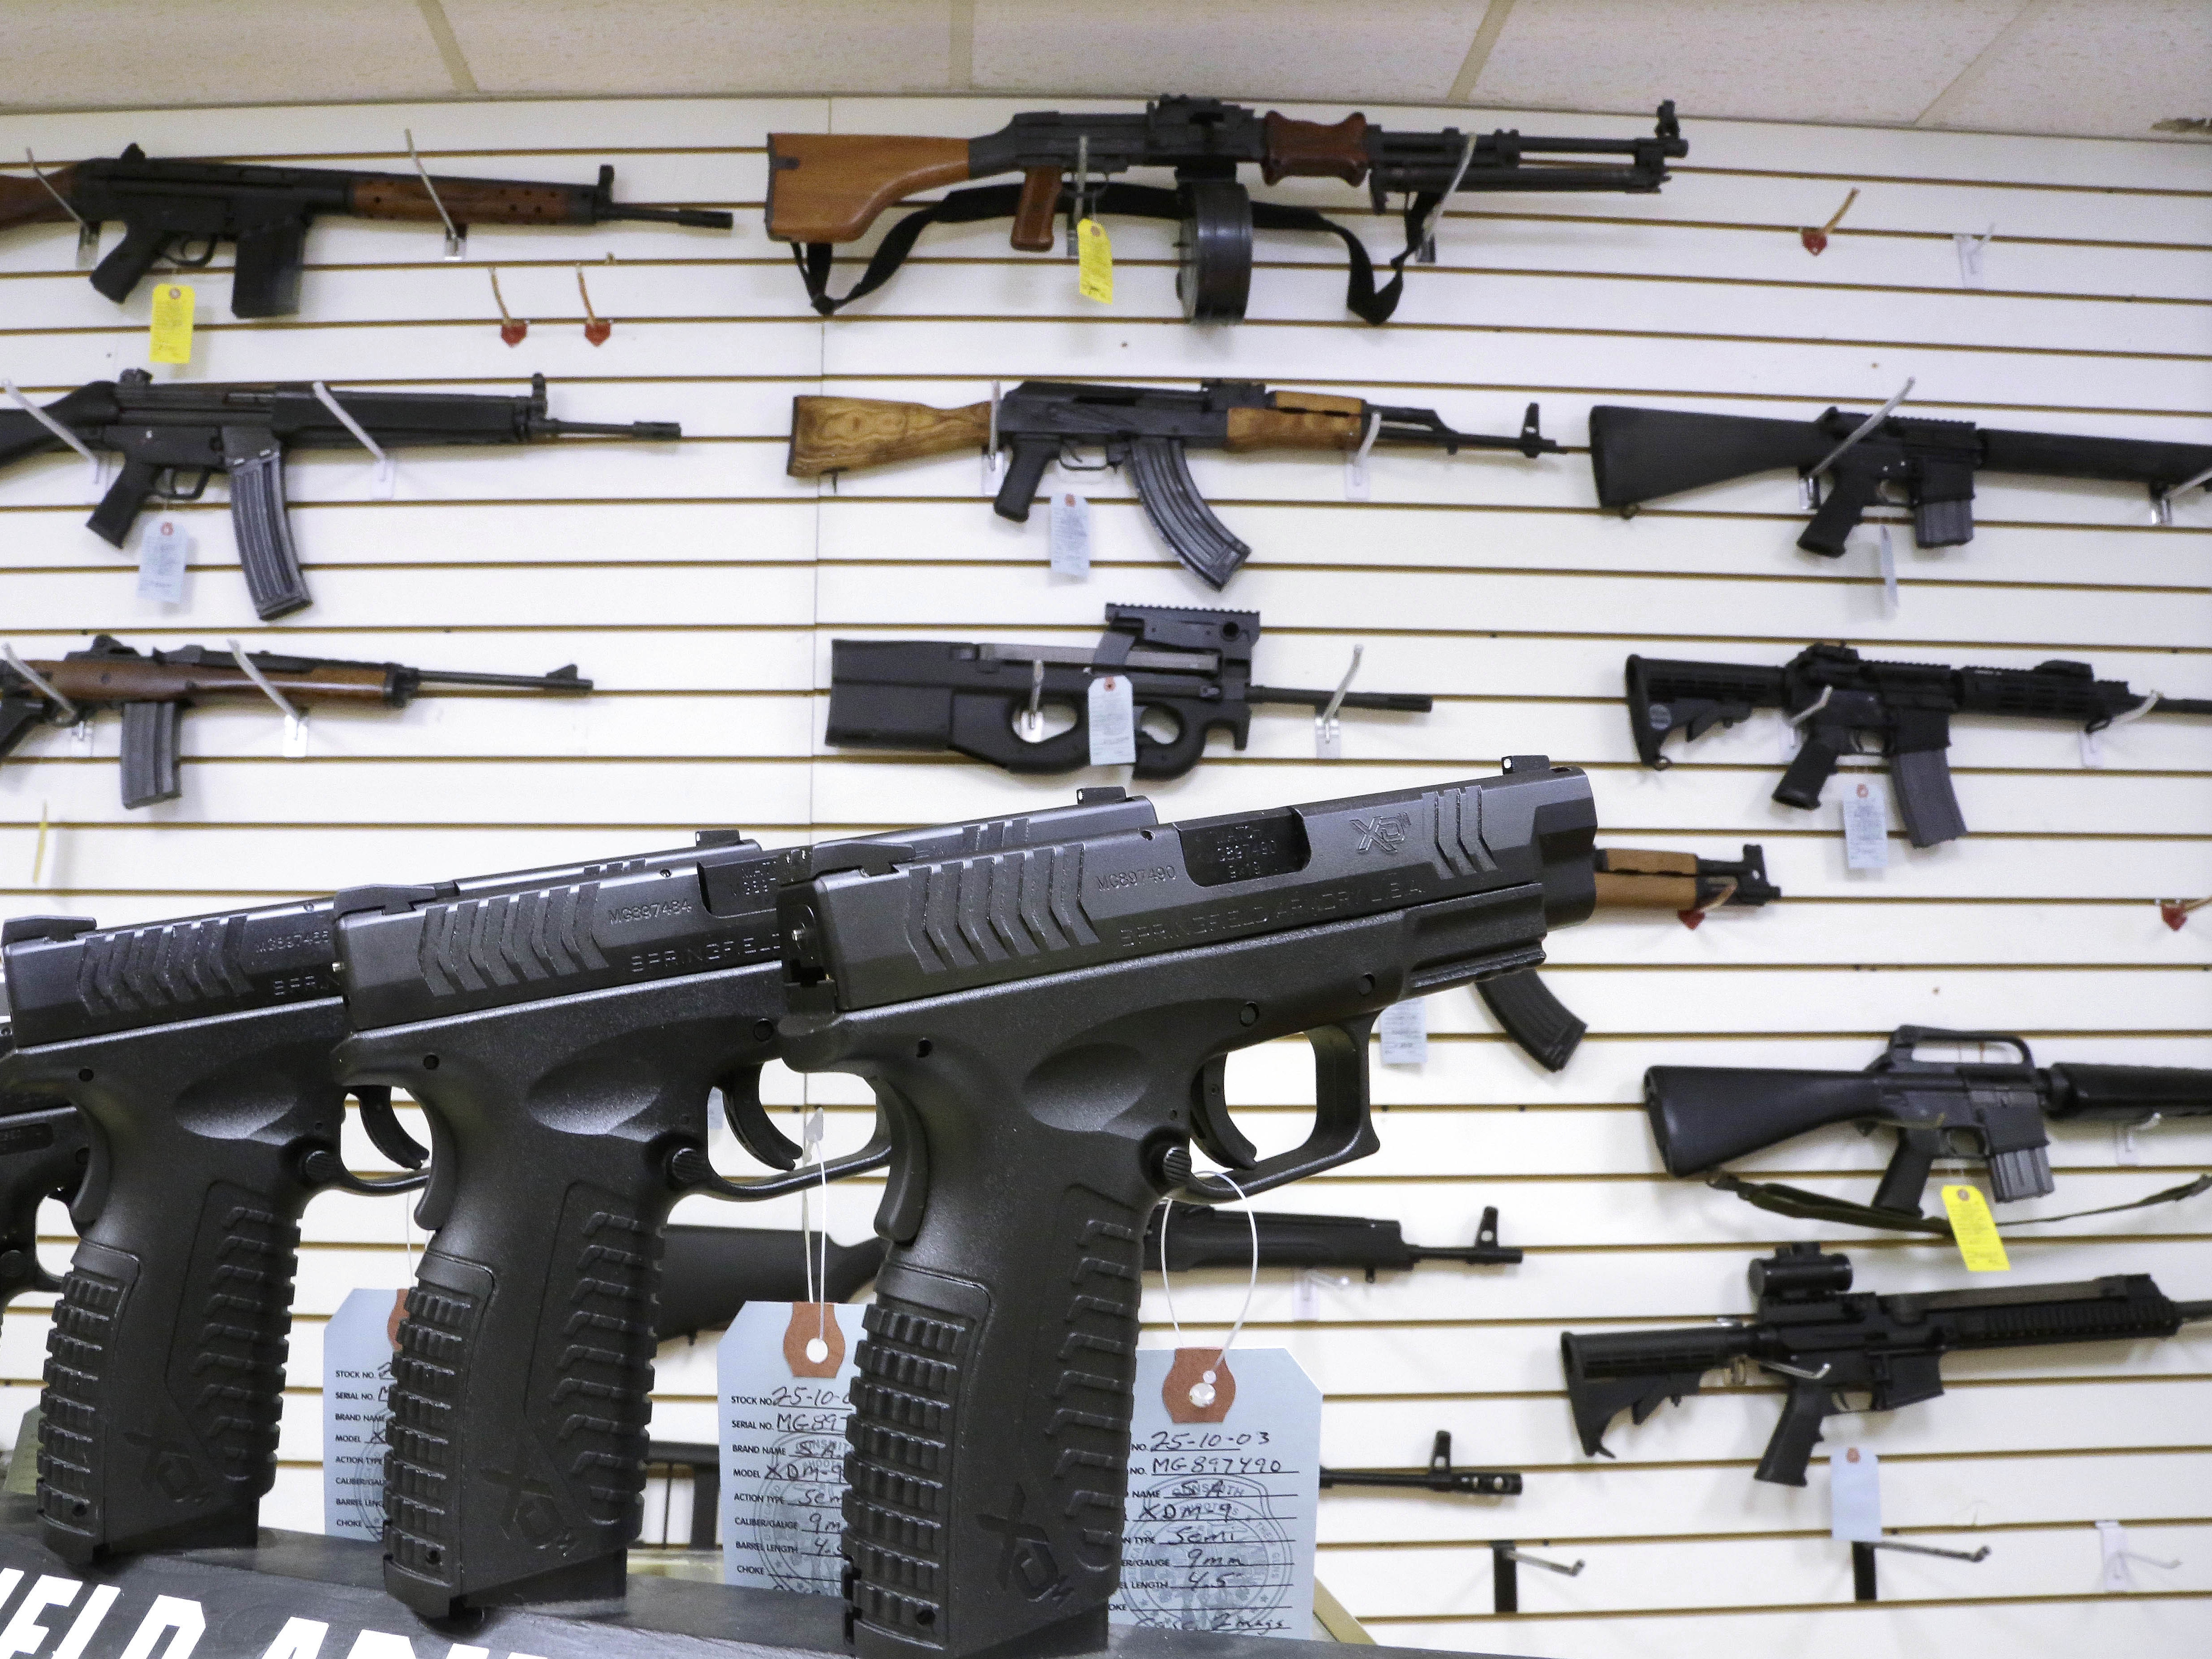 People On Terrorism Watch List Not Blocked From Buying Guns